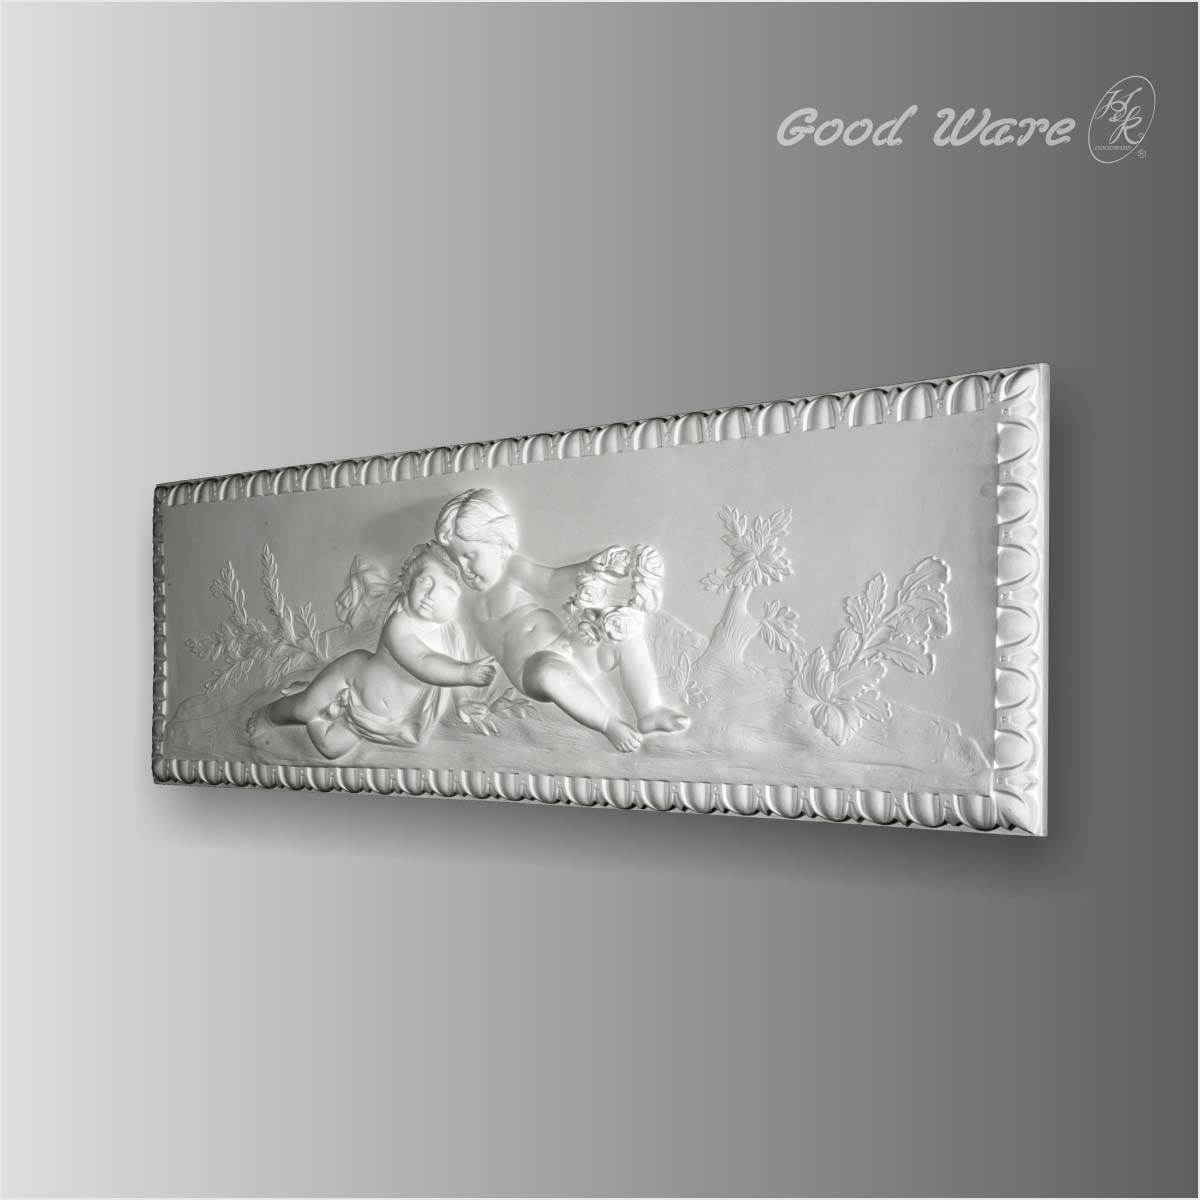 Polyurethane antique decorative wall plaques